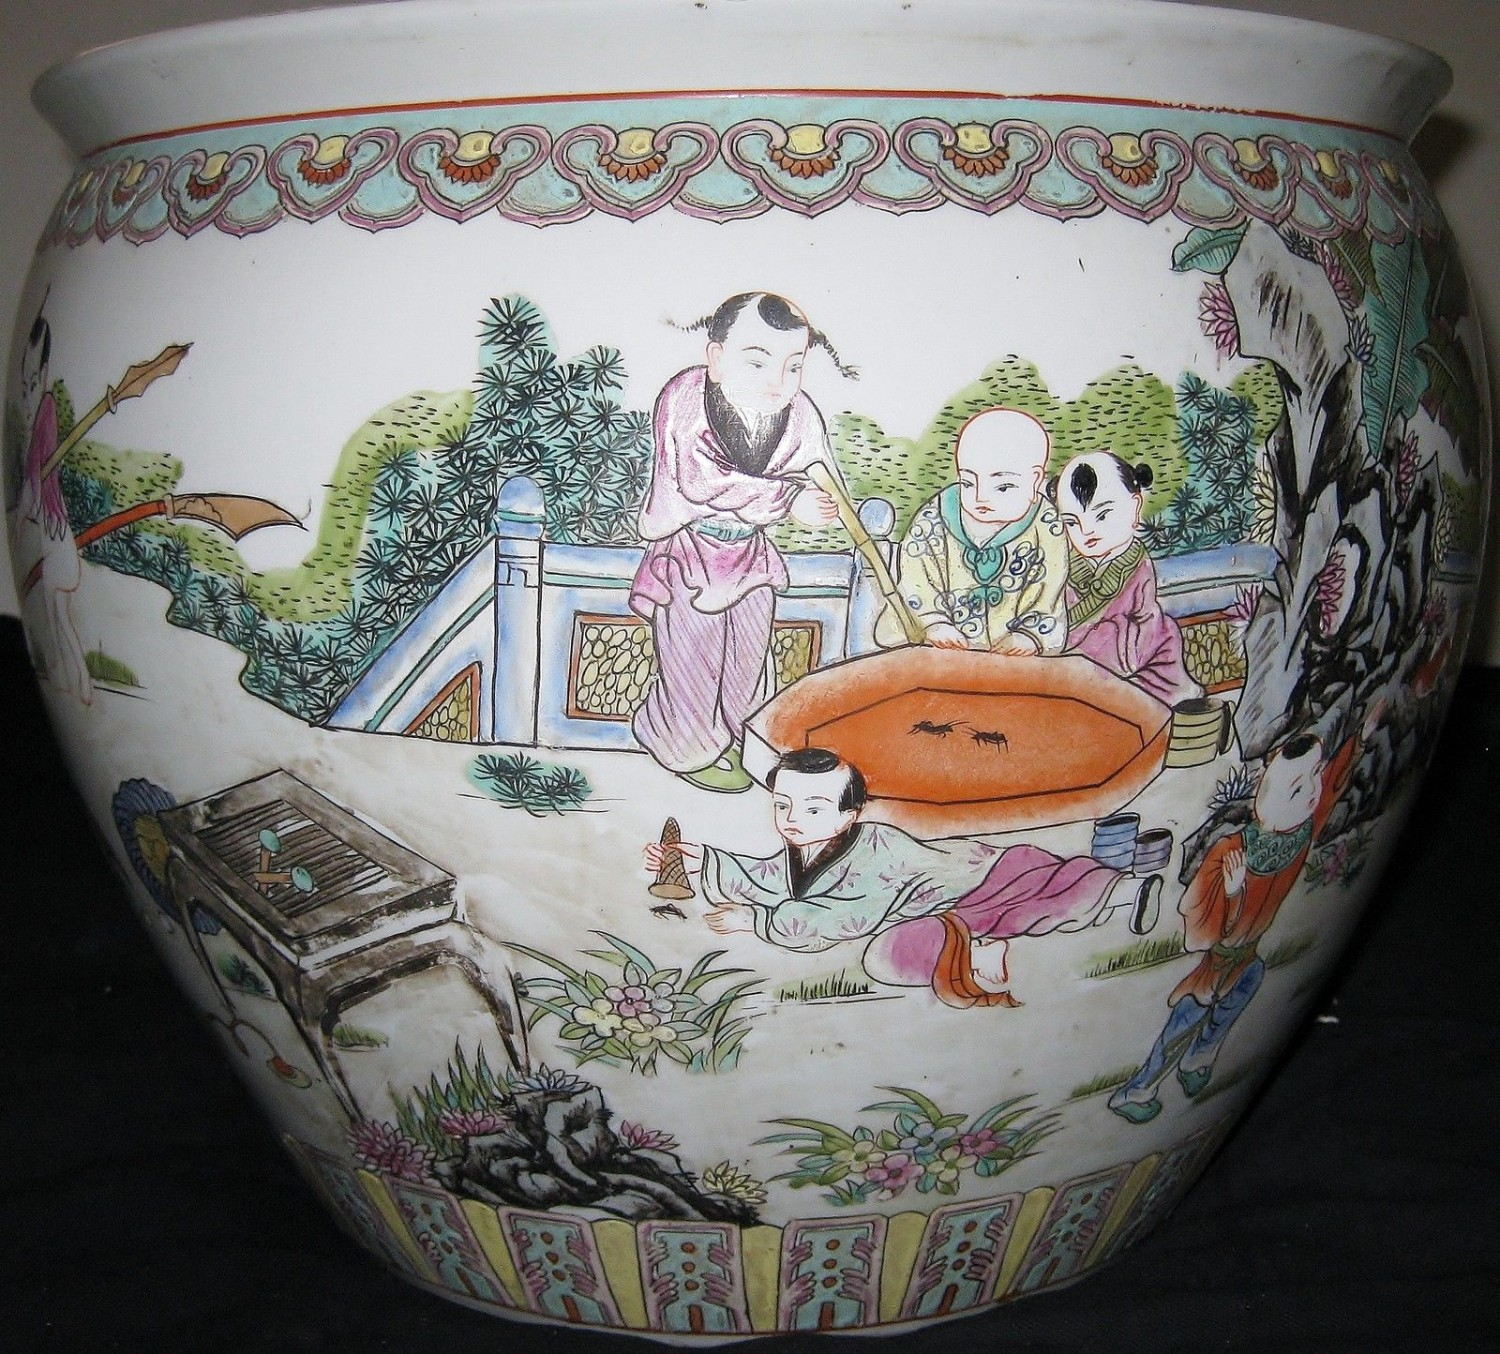 ANTIQUE HUGE CHINESE PORCELAIN FISH BOWL, GUANGXU MARK, 19TH CENTURY, NR.